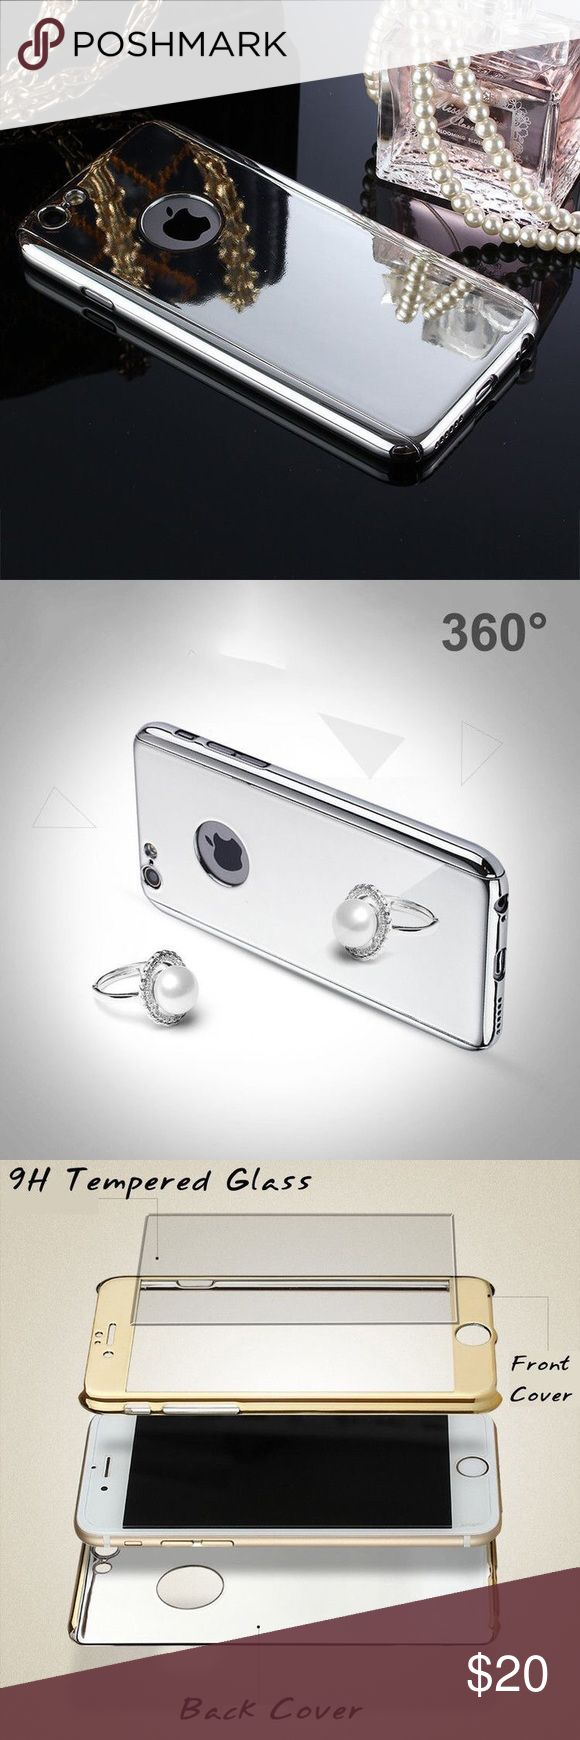 🆕the mirror plated 360° phone case • style name: the mirror plated 360° phone case • color: silver • material: alloy & plated metal/9h tempered glass • high shine mirror case w/ front & back pieces • also includes tempered glass protection for screen & camera • currently stocking for iphone 6/6s - comment to request for a different phone • condition: brand new boutique item ____________________________________________________ ✅ make an offer!     ✅ i bundle! ✅ posh compliant closet ⛔️ no…